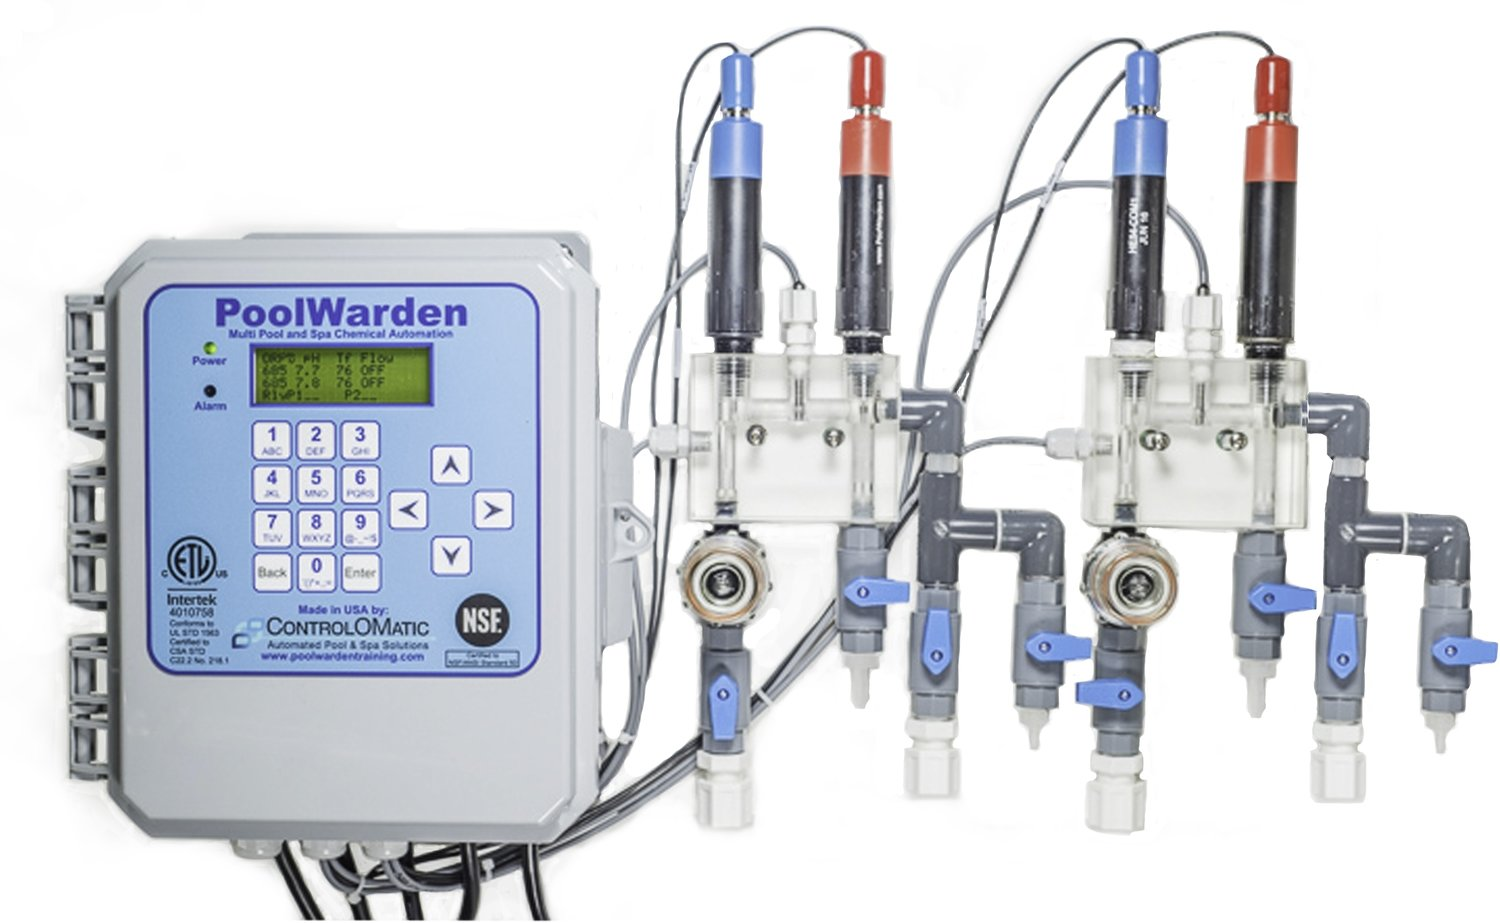 PoolWarden Pool Chemical Control System